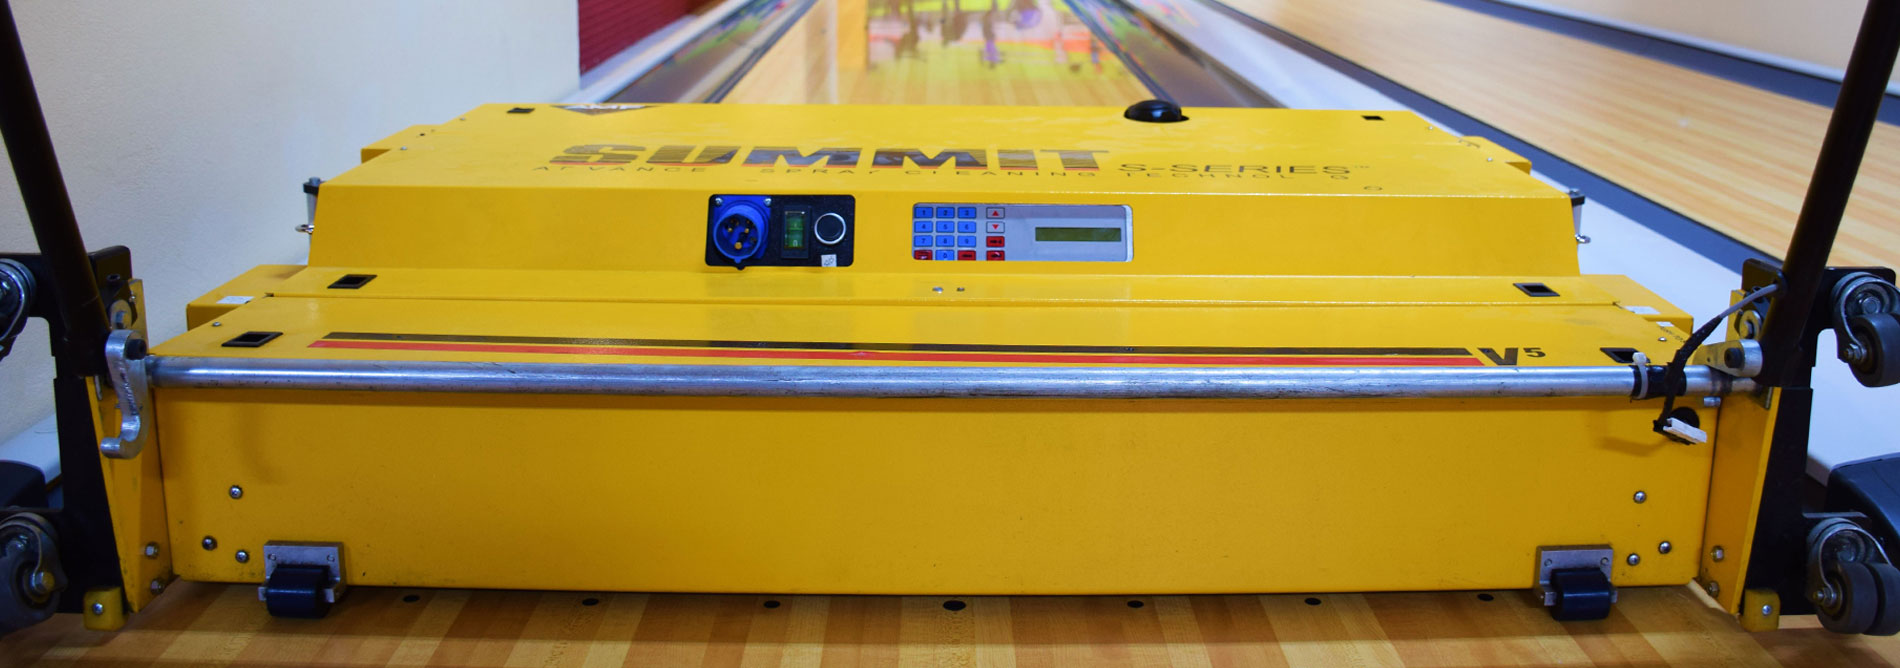 Bowling-QubicaAMF-Lane-Machines-upgrade-banner.jpg